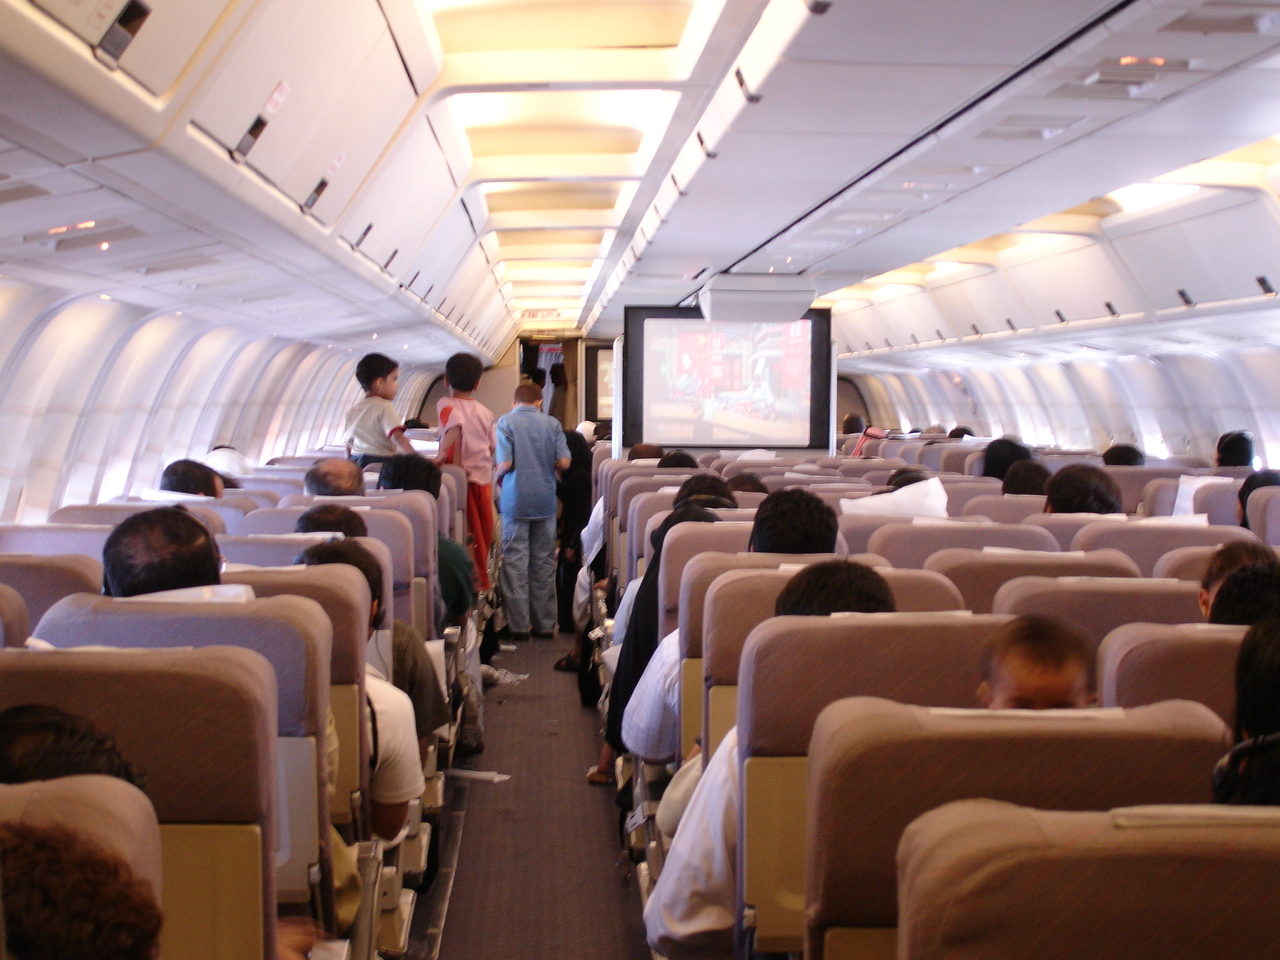 Airplane cabin, Airplane, Cabin, Indoors, Passengers, HQ Photo